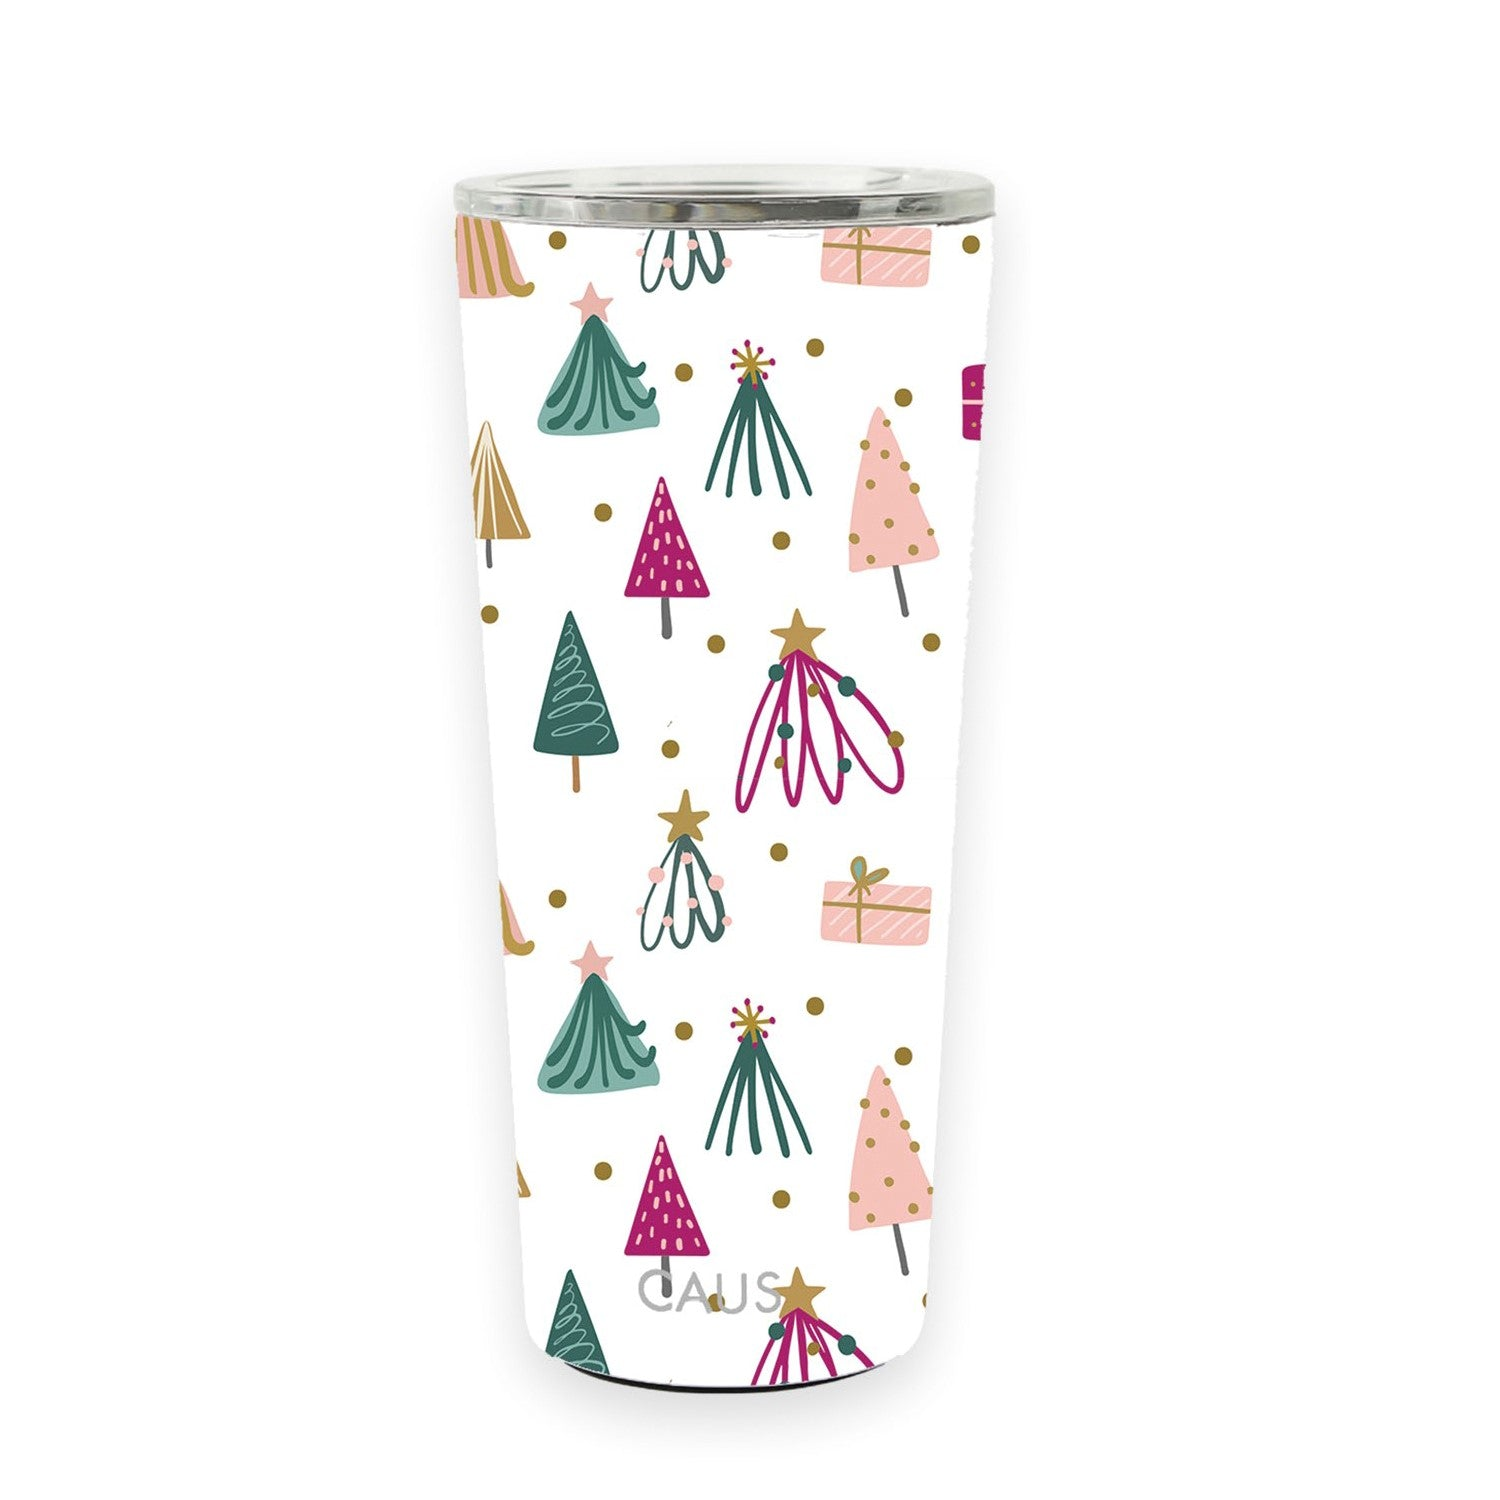 CAUS Large Tumbler Whimsical